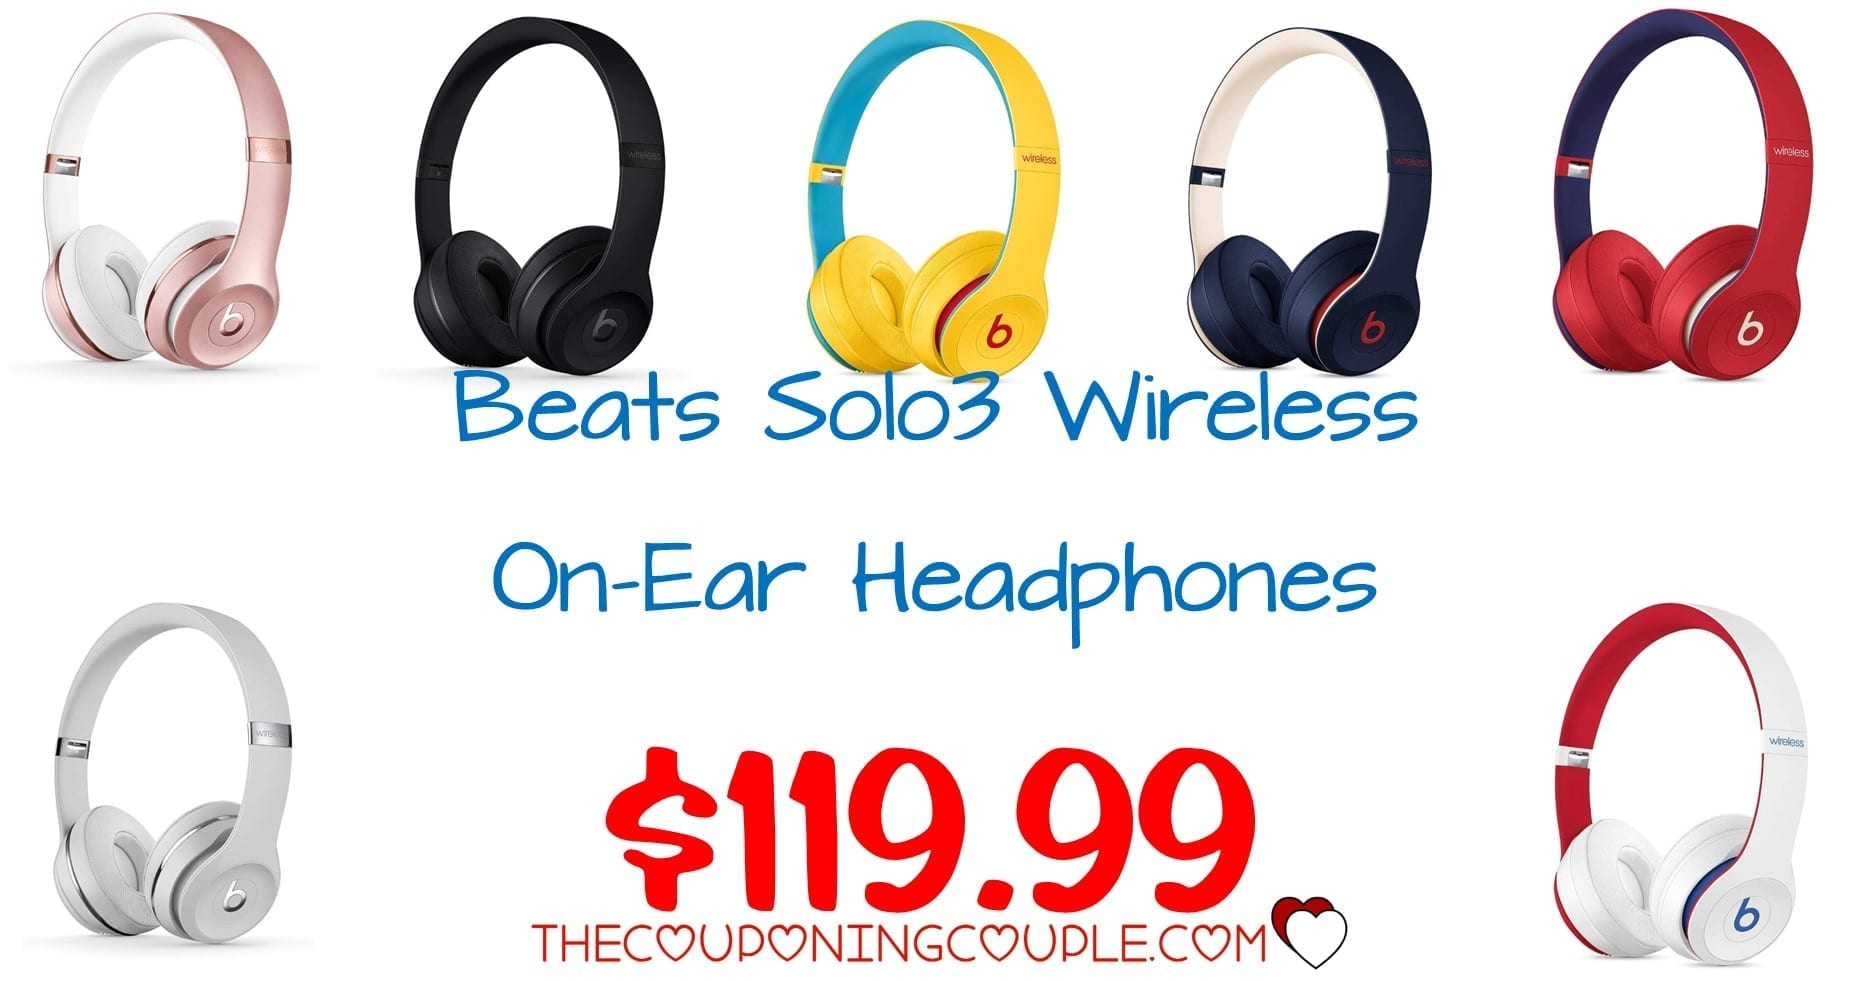 BEST PRICE! Beats Solo3 Wireless Headphones - ONLY $119.99!